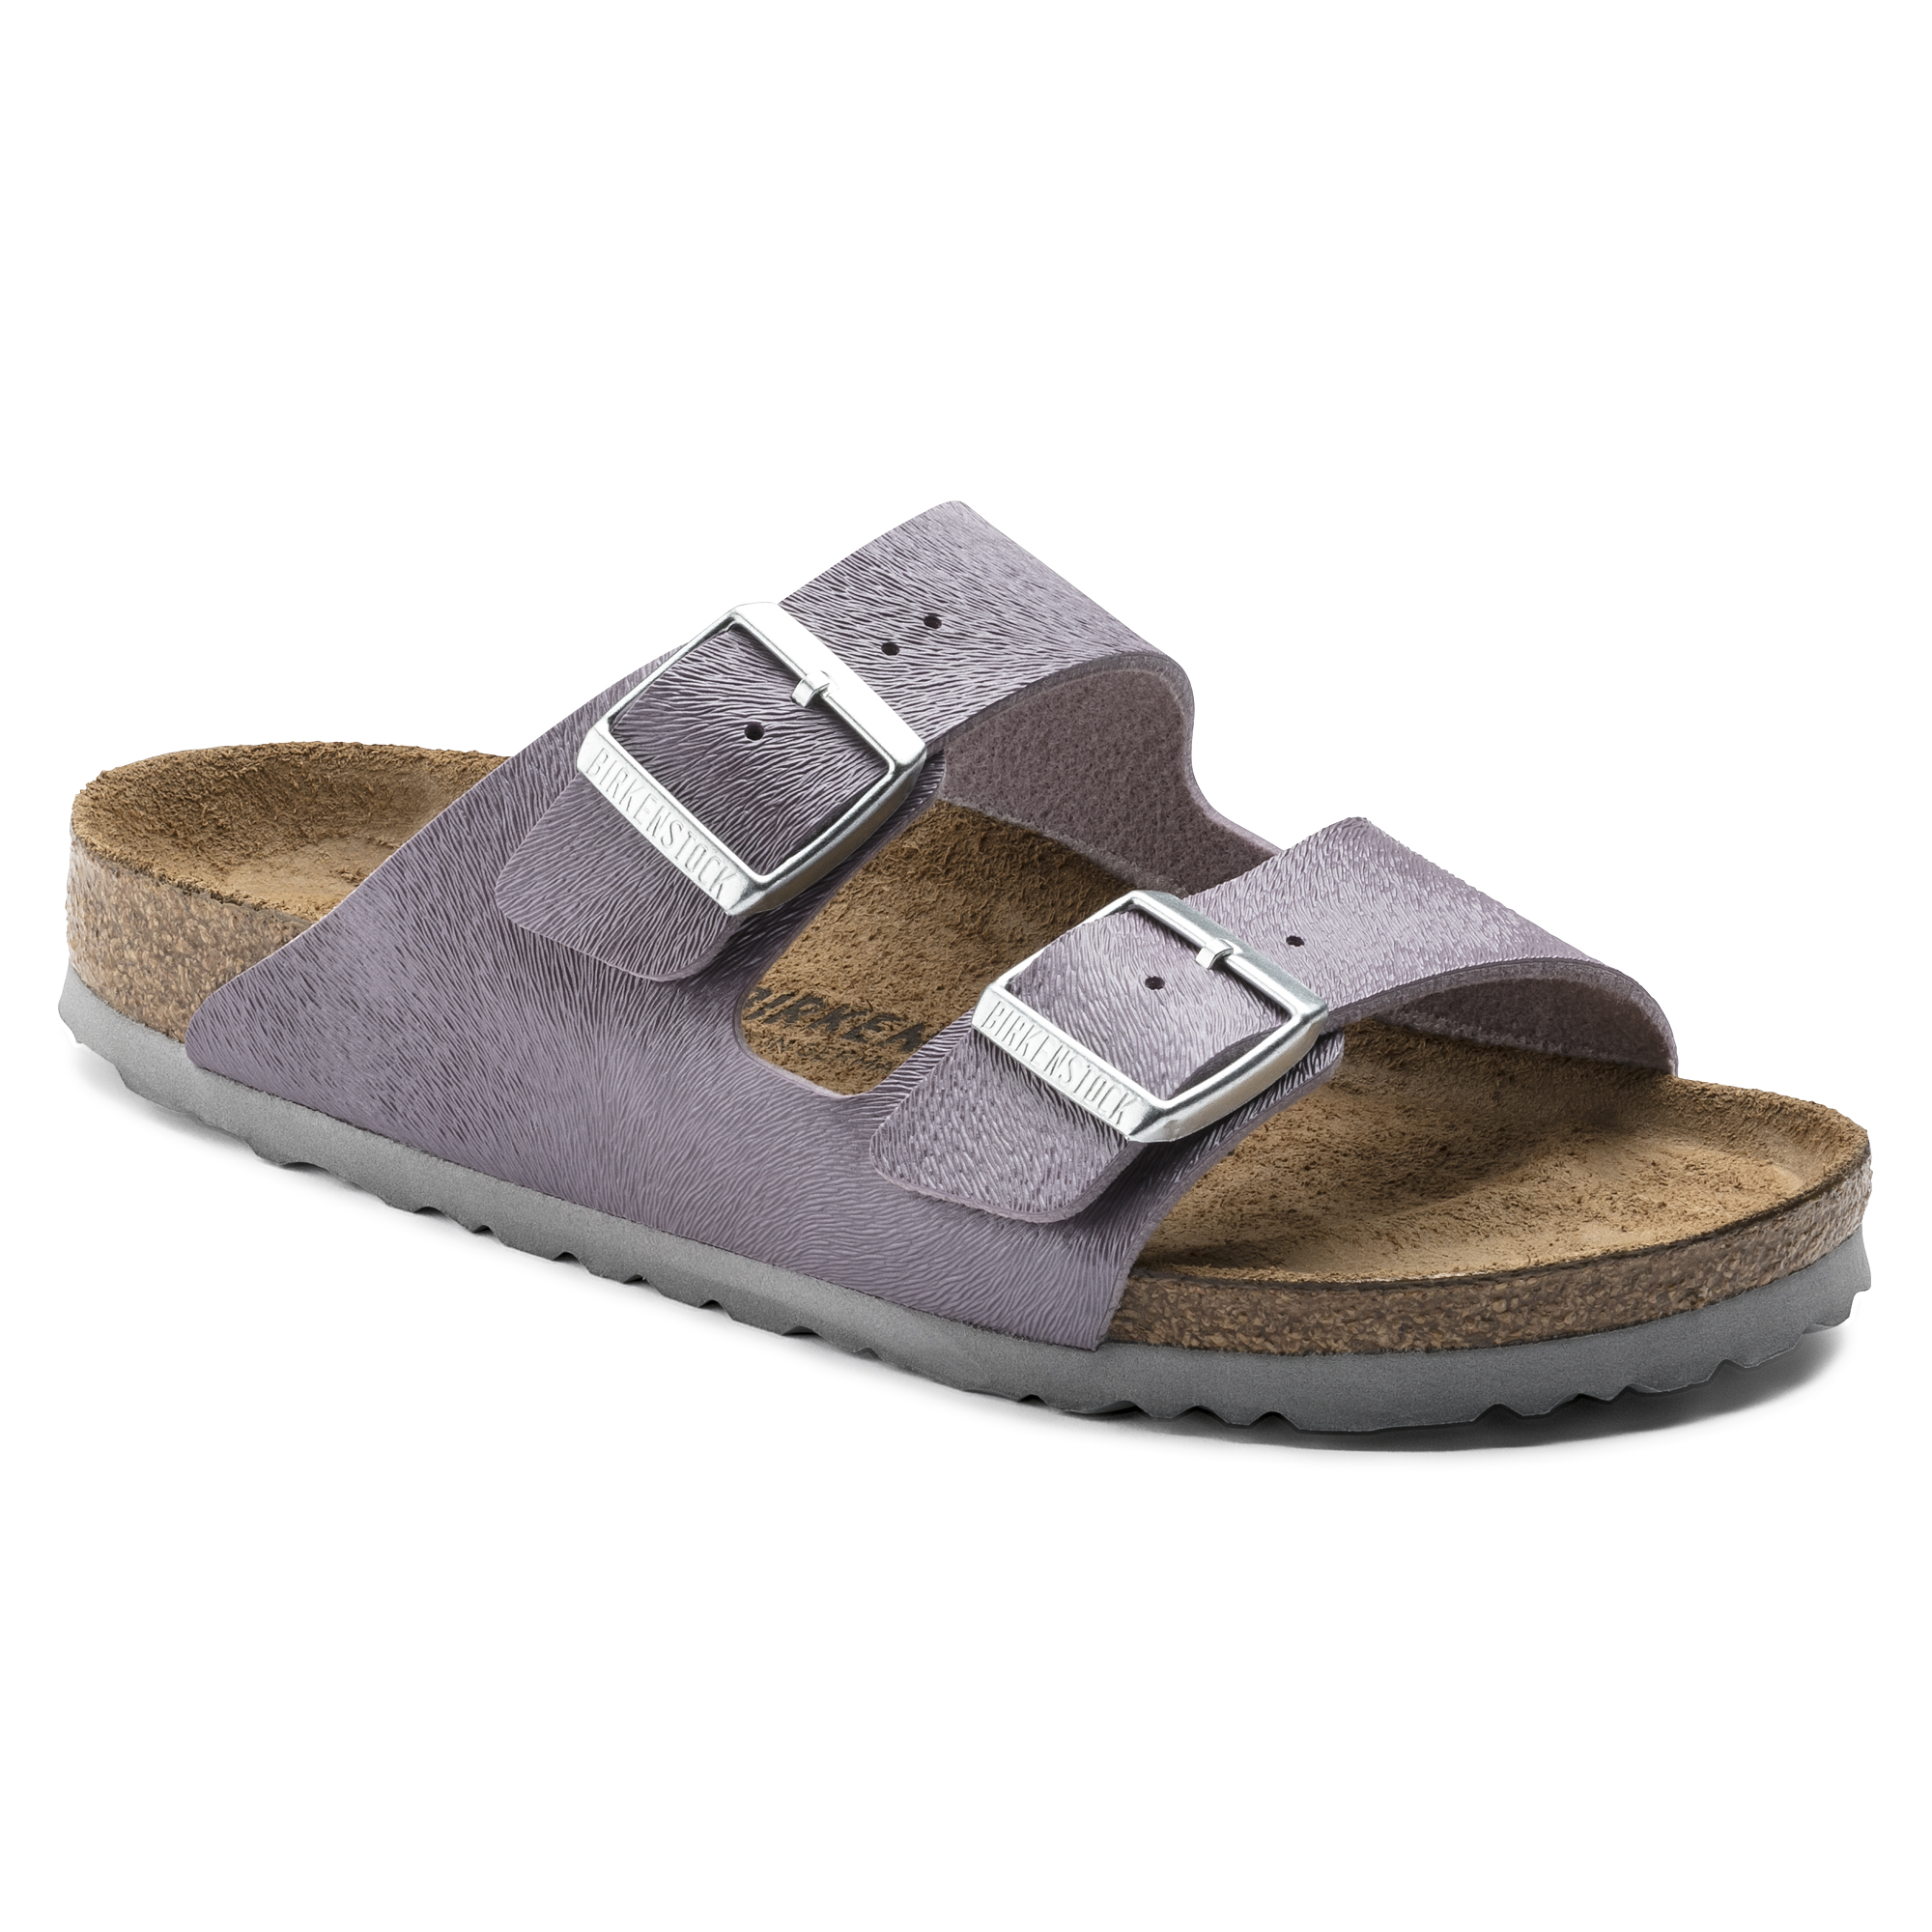 Birkenstock Gizeh Animal Fascination Slate Birko Flor Buckle Sandals Women Sz 38